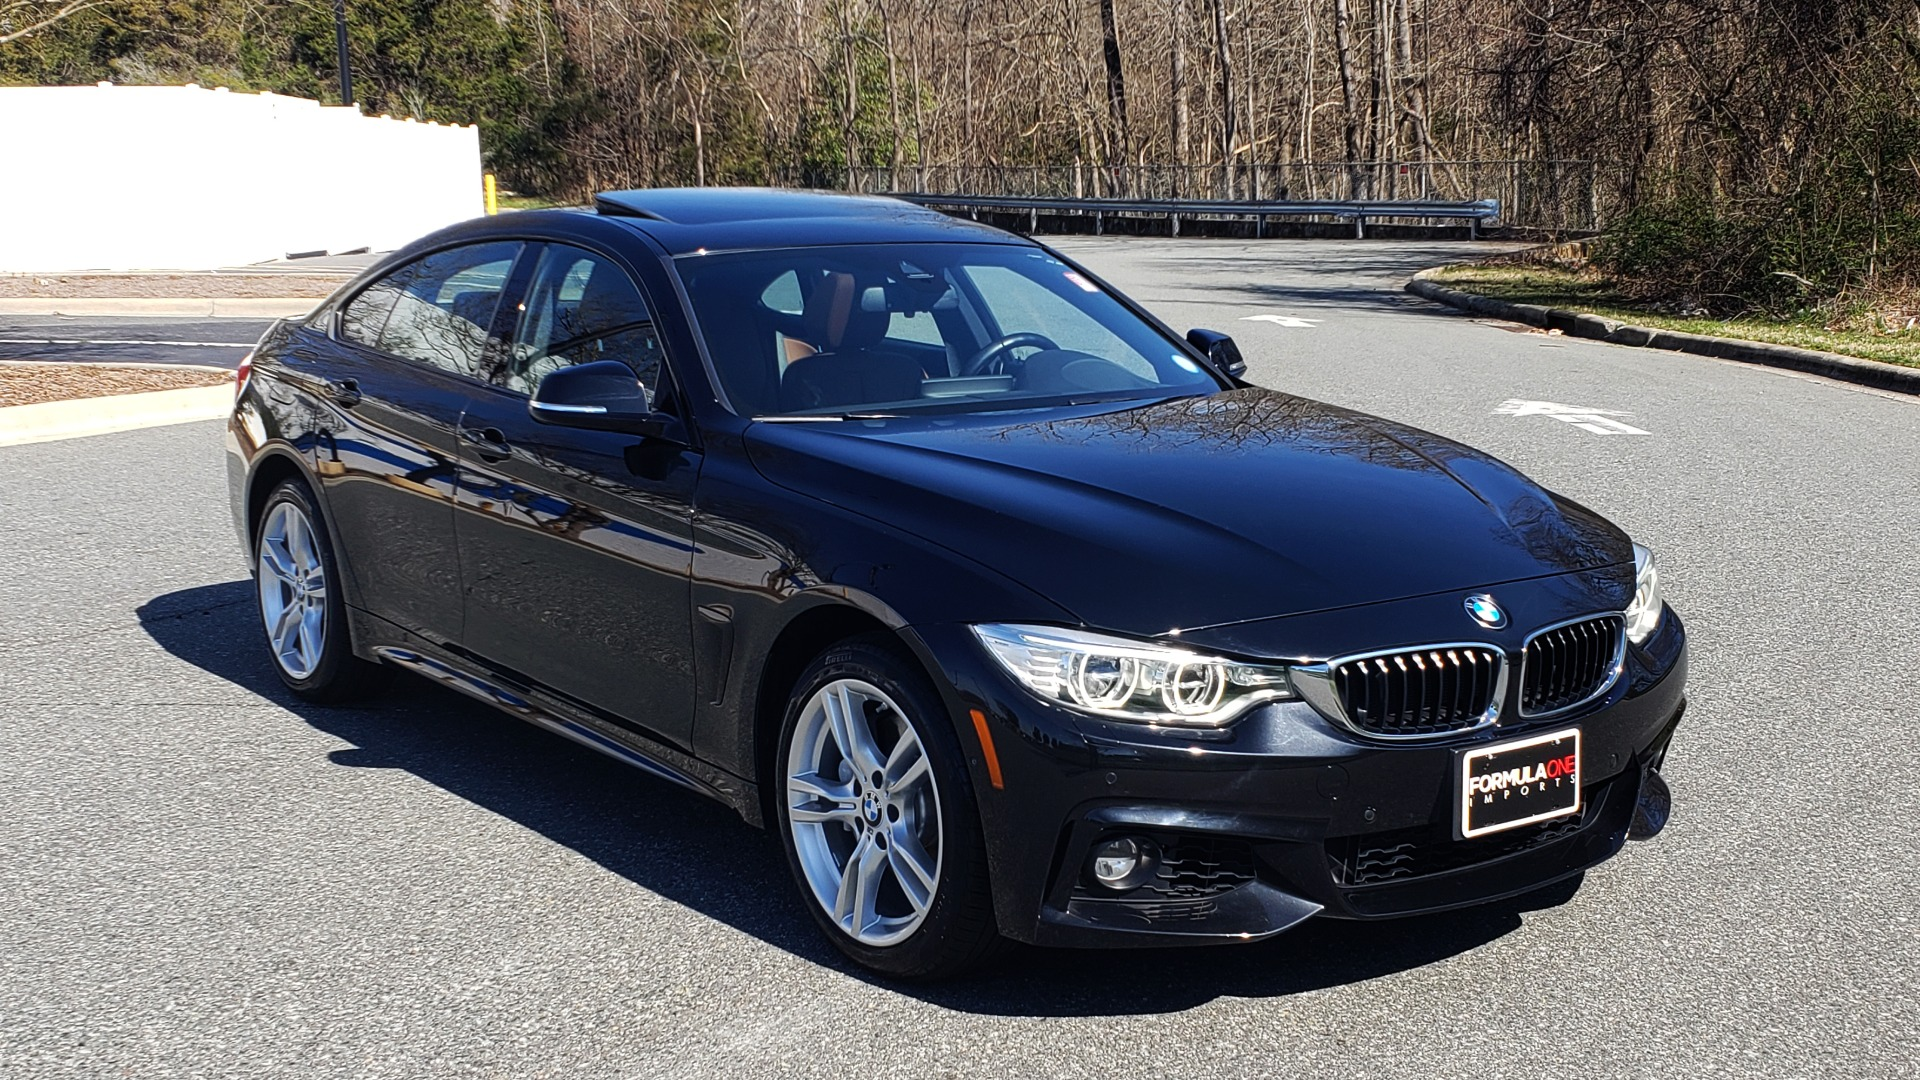 Used 2017 BMW 4 SERIES 440i XDRIVE M-SPORT / TECH / CLD WTHR / DRVR ASST PLUS / LIGHTING for sale Sold at Formula Imports in Charlotte NC 28227 4